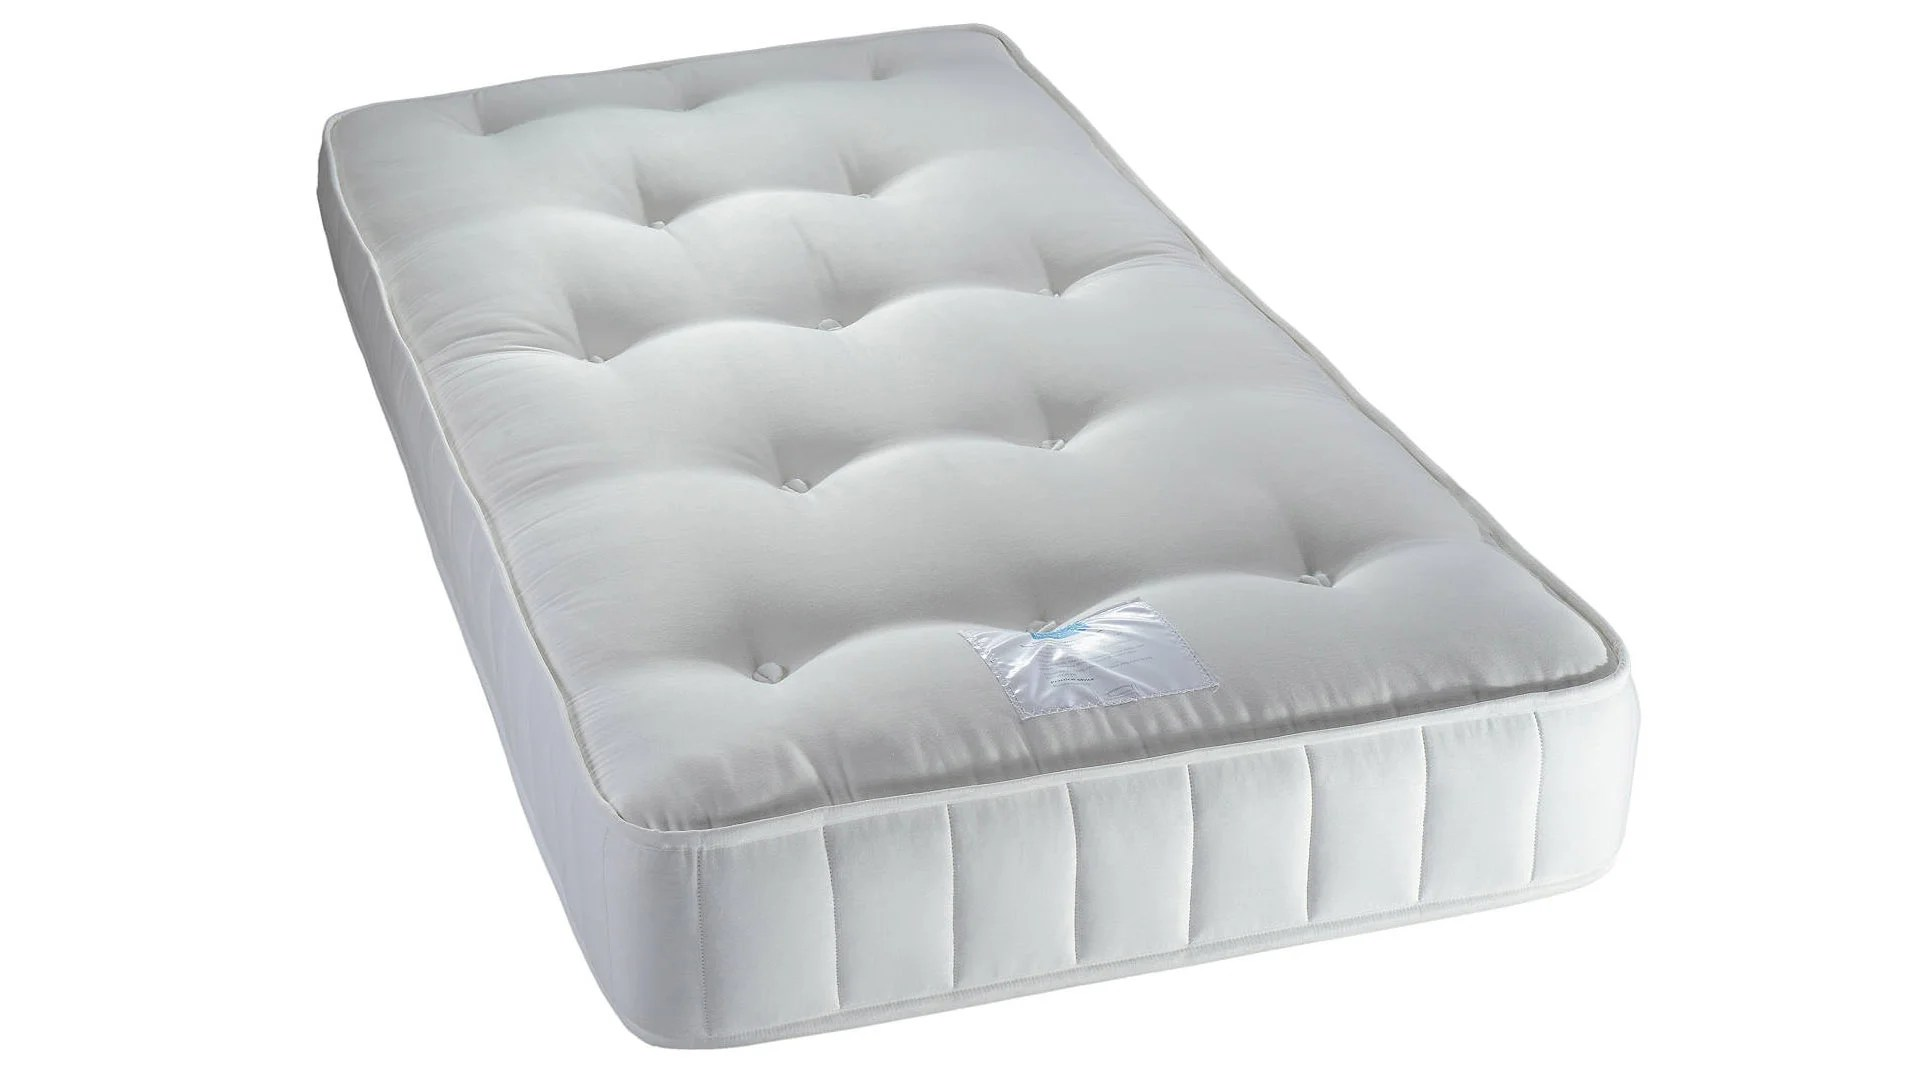 Single Pocket Sprung Memory Foam Mattress Best Children S Mattress The Best Open Coil Pocket Sprung And